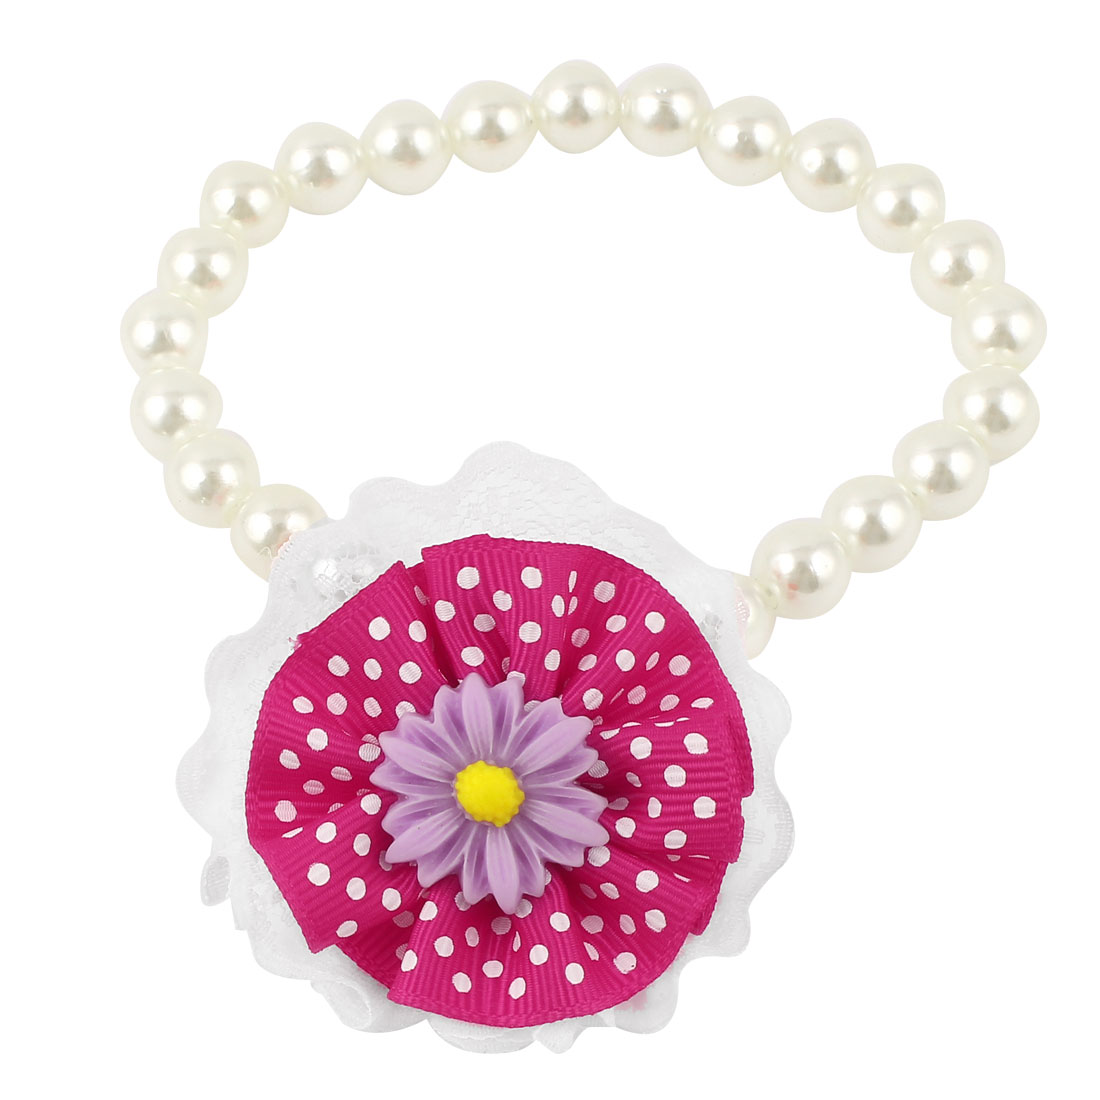 Lace Fuchsia Flower Accent Pet Dog Plastic Beads Imitation Pearls Collar Necklace White M